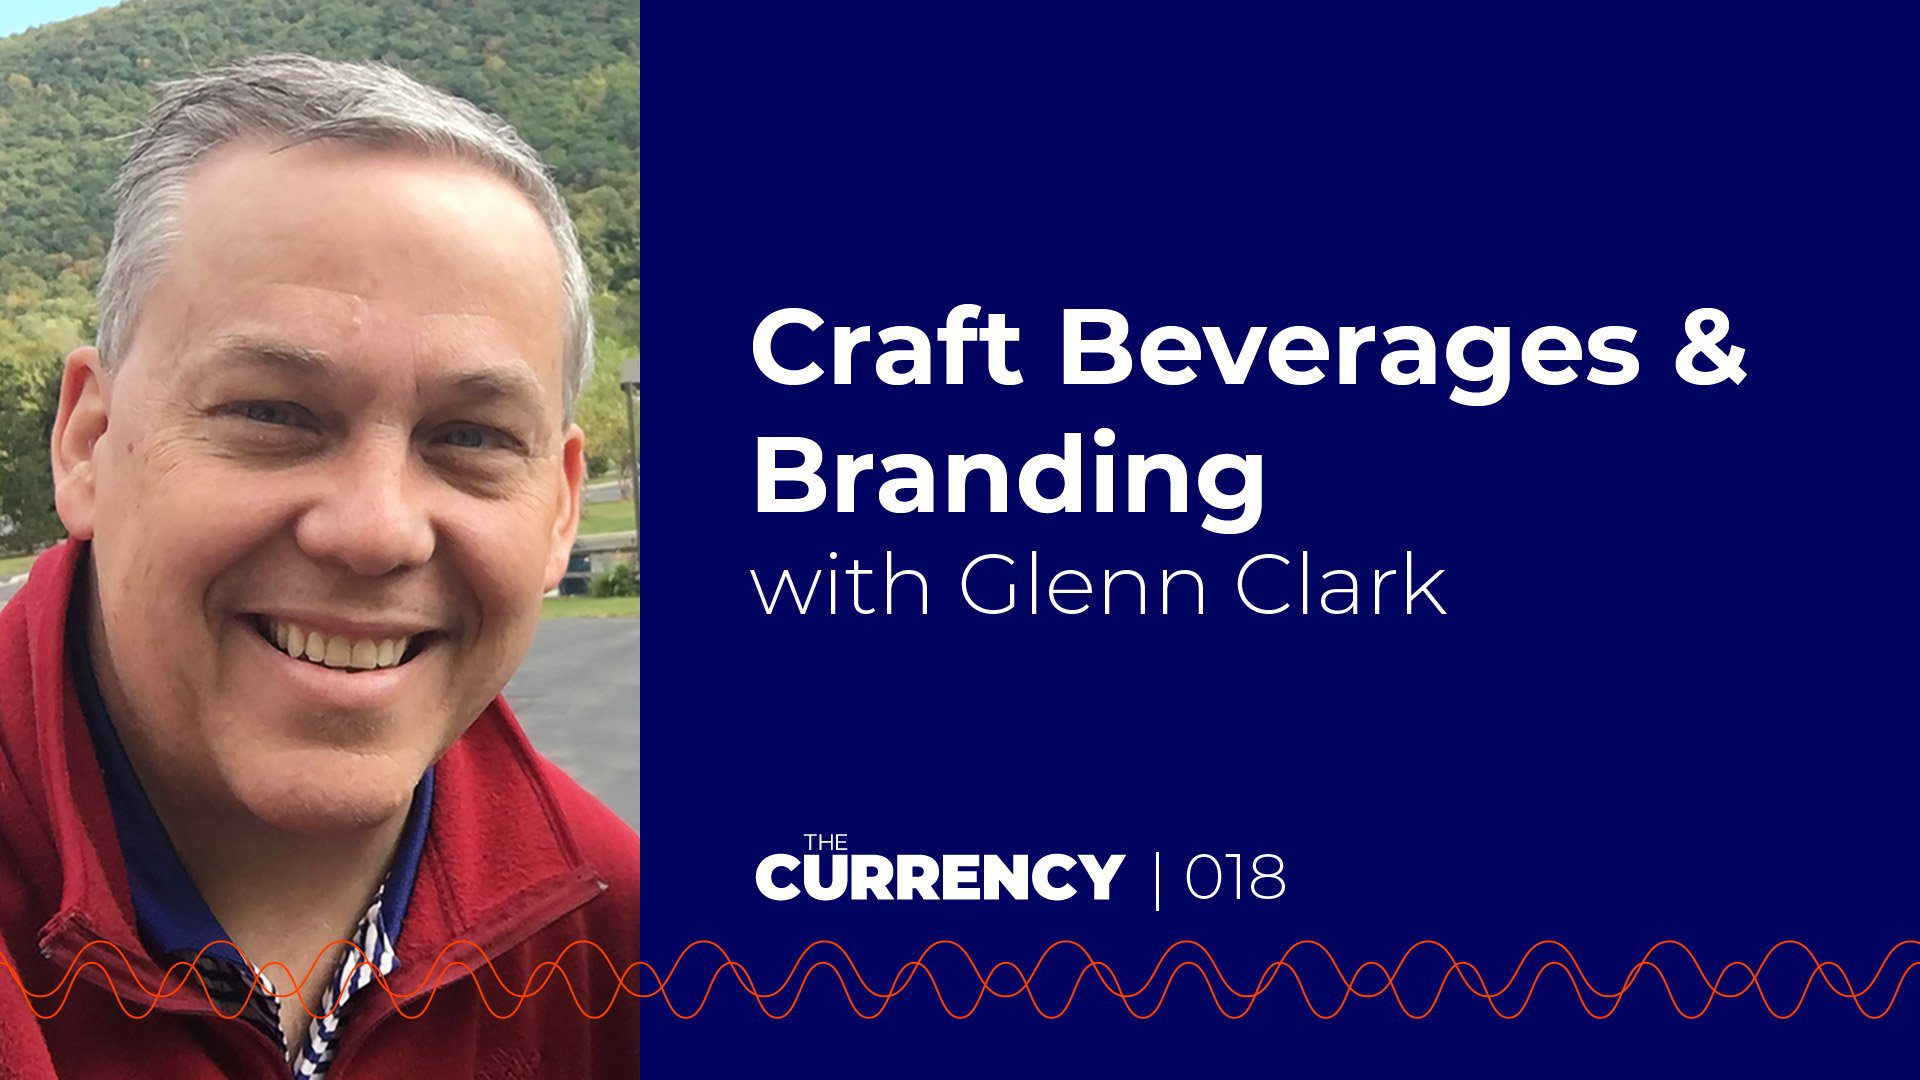 The Currency: [018] Craft Beverages & Branding with Glenn Clark of Crafting A Brand